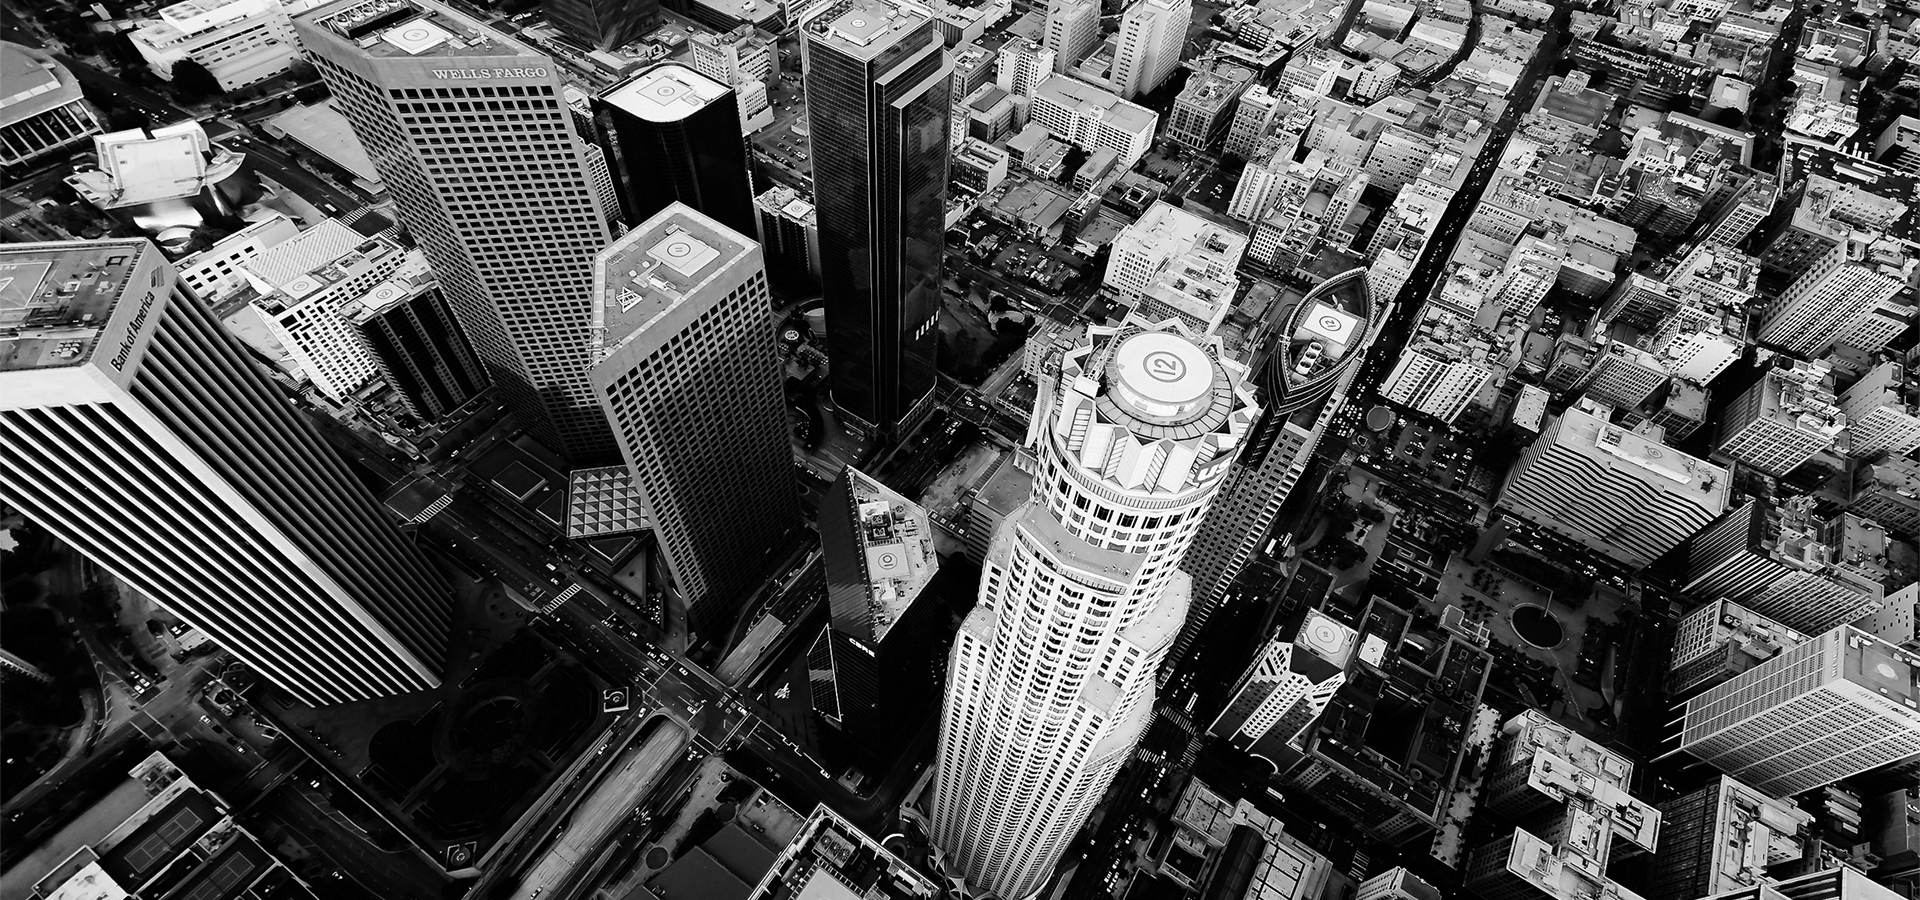 Black and white photo of buildings in the city of Los Angeles